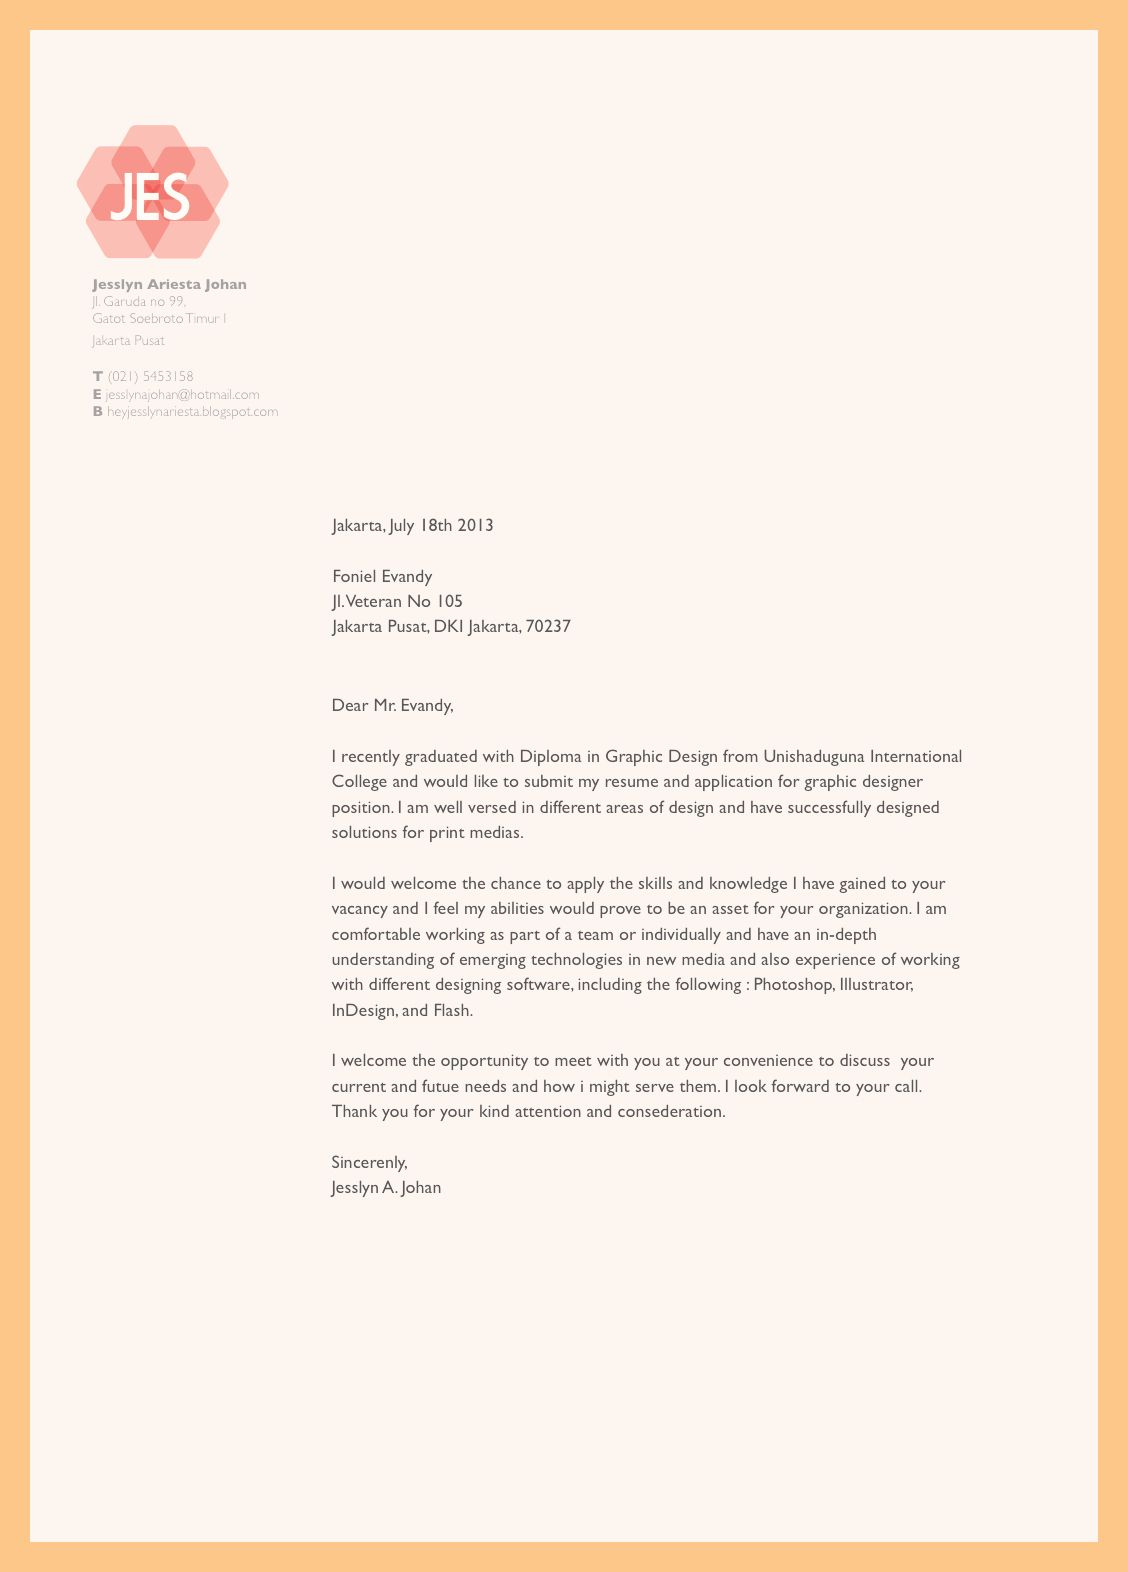 Product Designer Cover Letter 30 Graphic Design Cover Letter Graphic Design Cover Letter